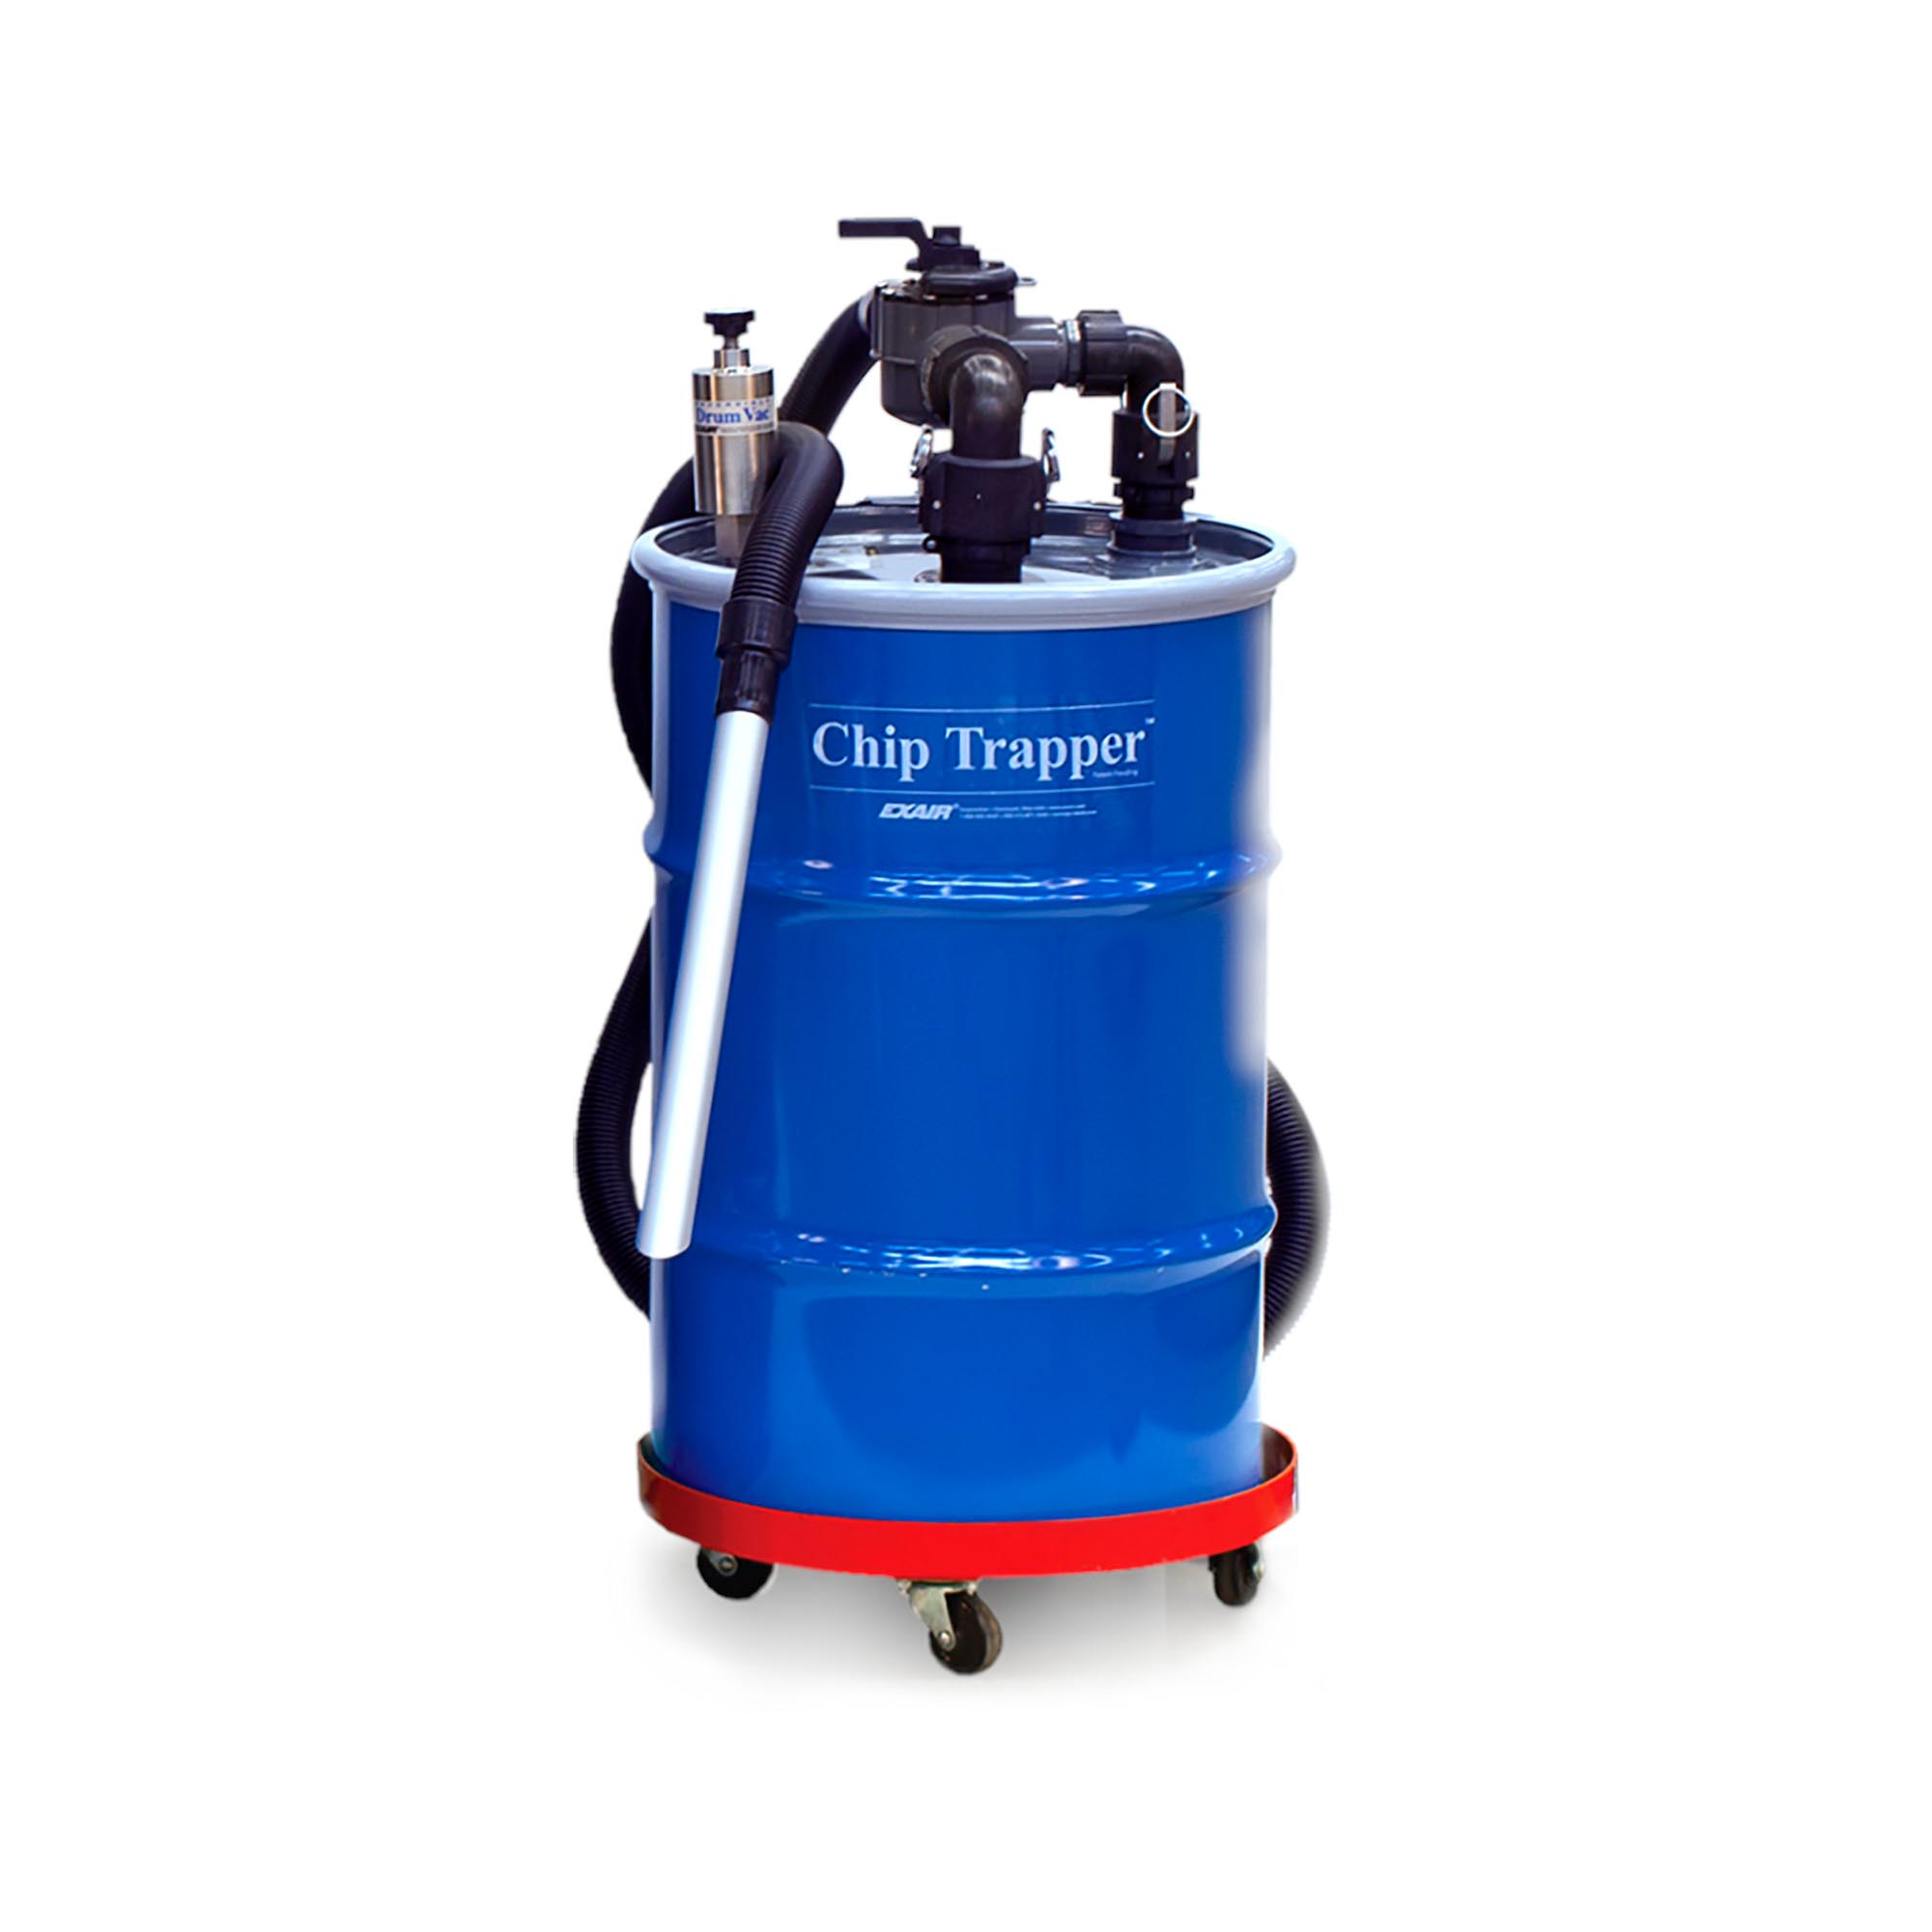 Model 6198-30 30 Gallon Chip Trapper System